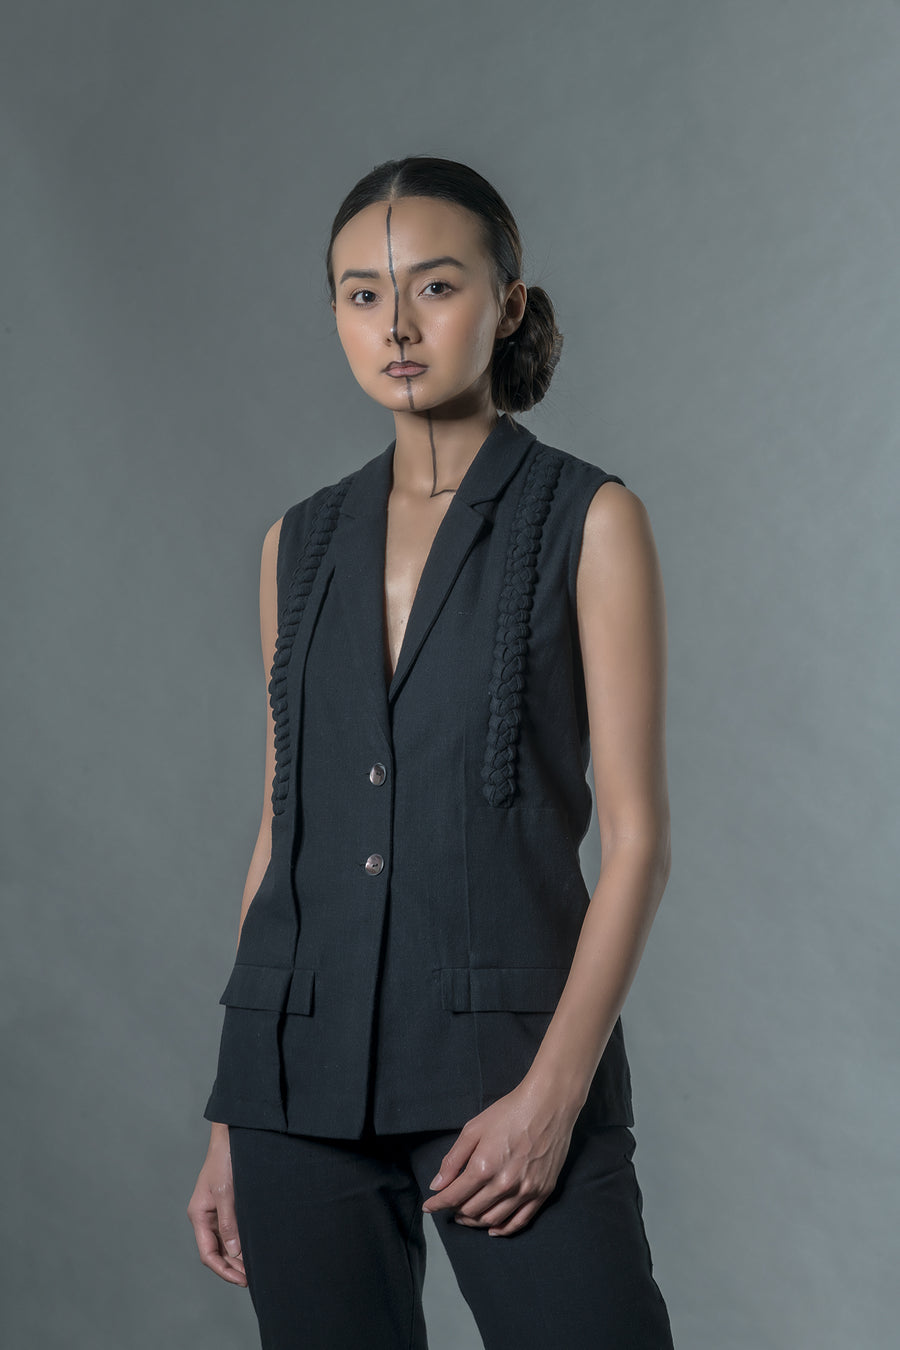 Black vest with braids - Ethical made fashion - onlyethikal